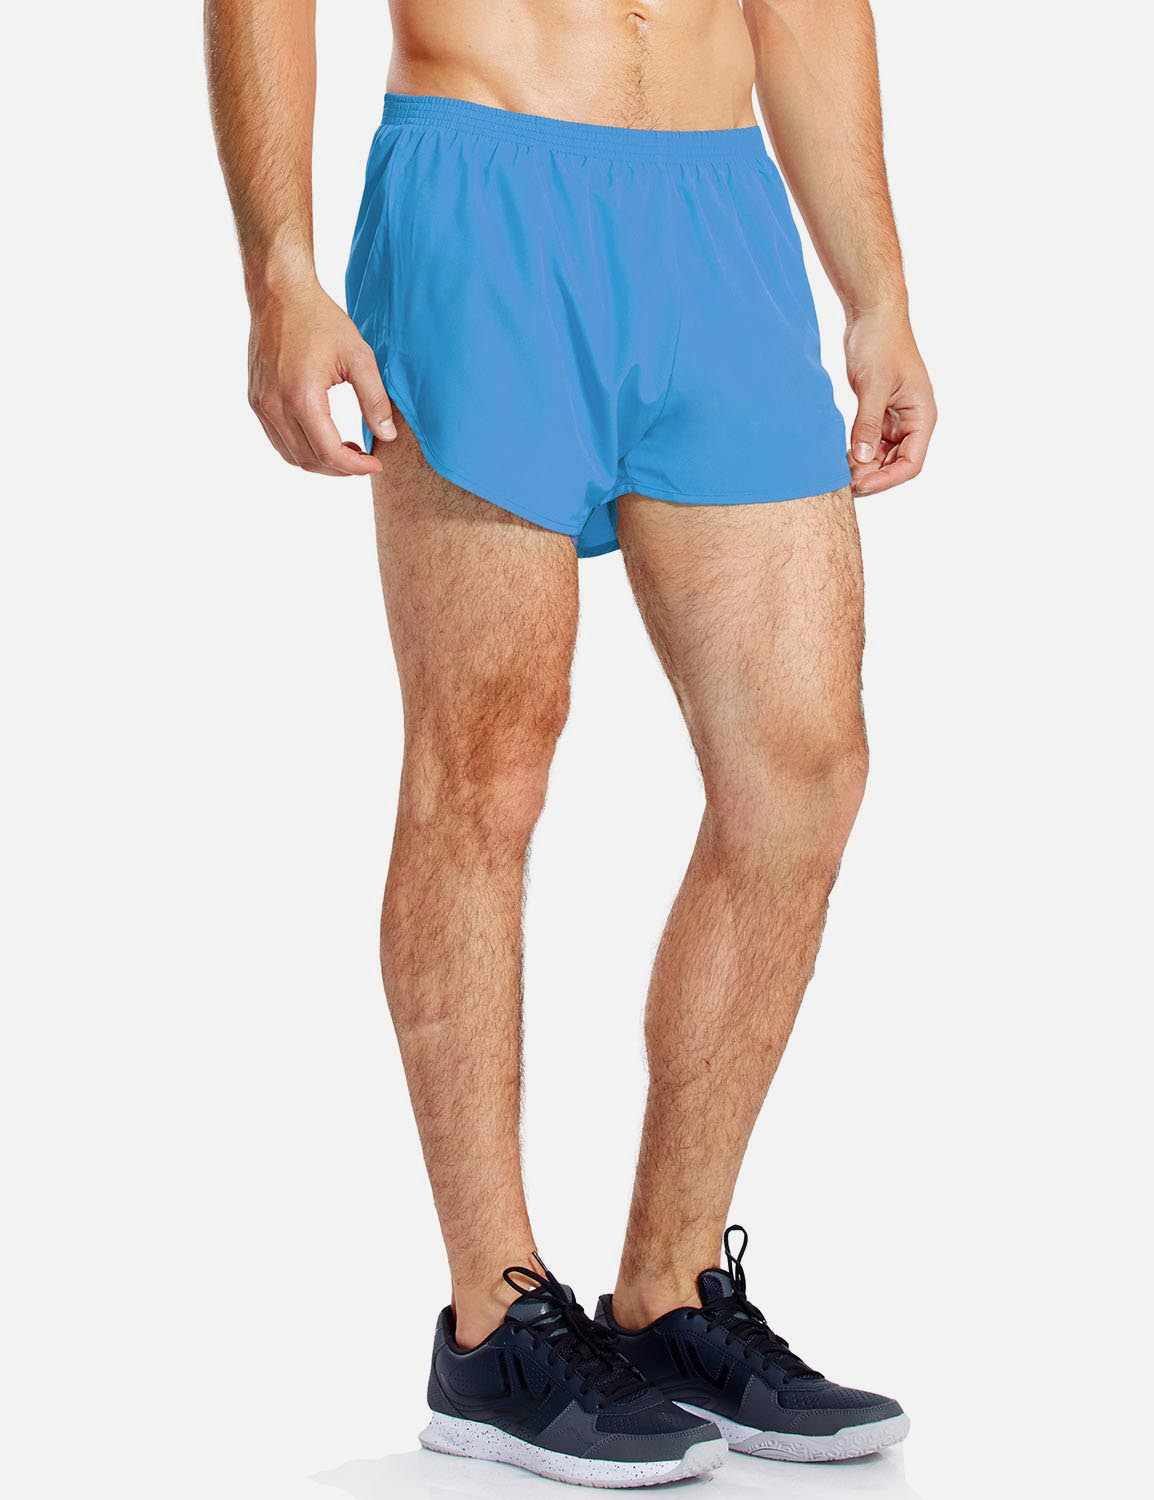 Baleaf Mens 3'' Split-Leg Basic Running Shorts light blue side